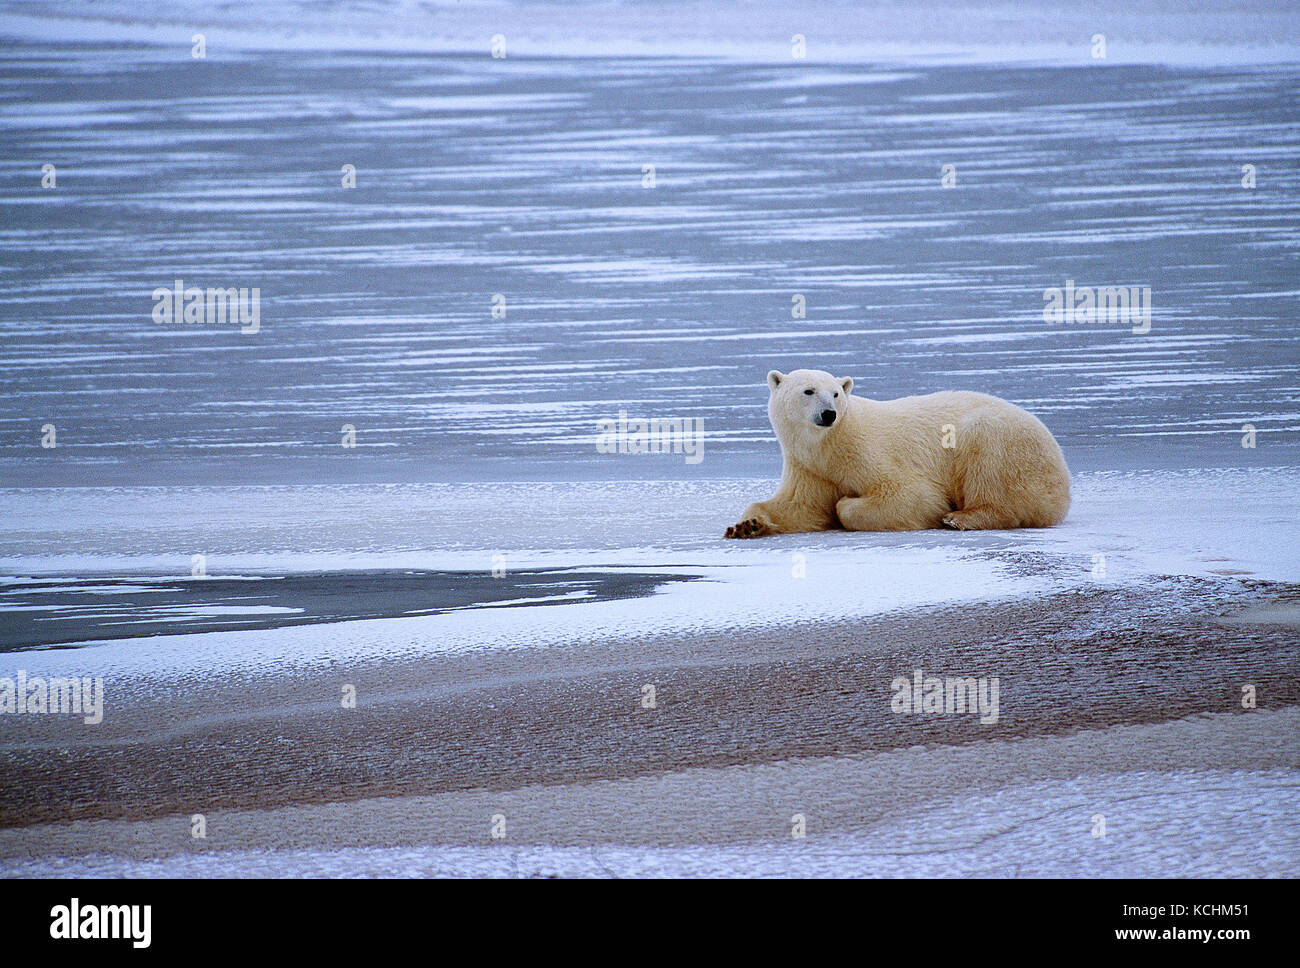 Canada. manitoba. churchill. wildlife. polar bear . Immagini Stock